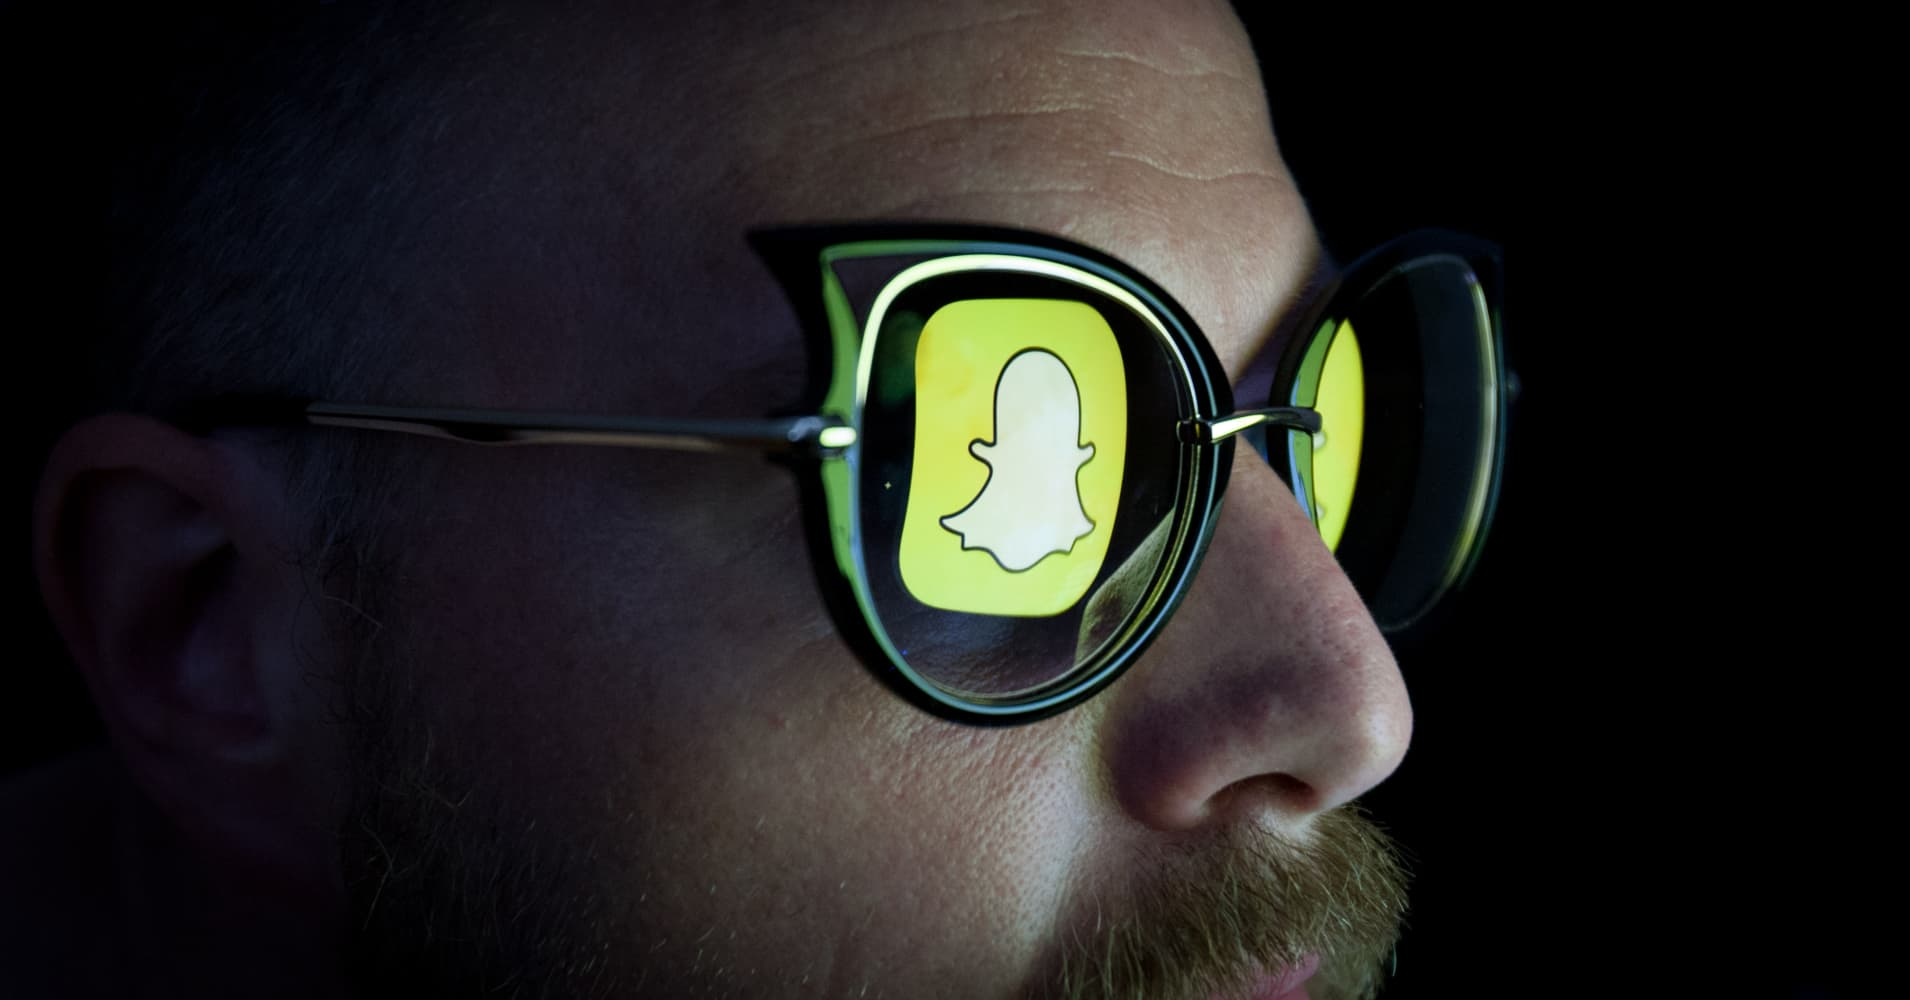 Snapchat is 'total junk' and investors should avoid its IPO